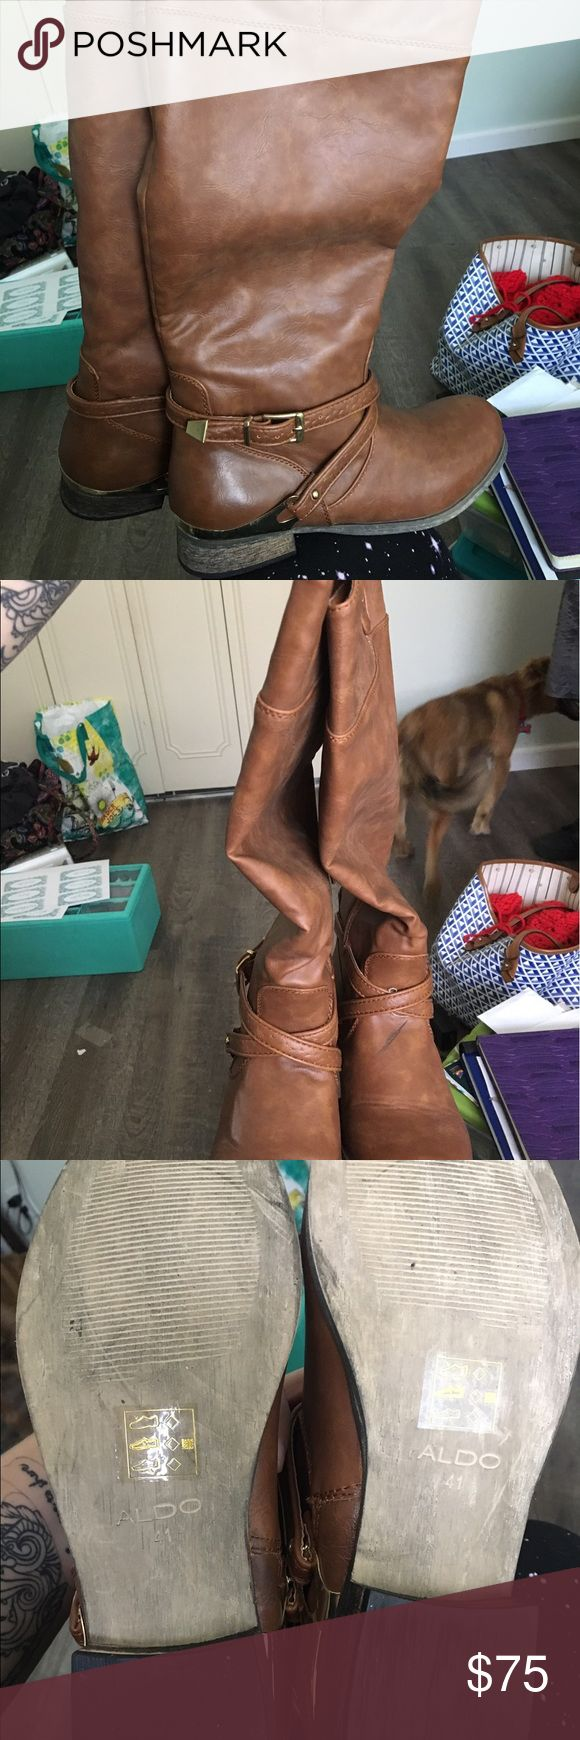 Aldo Boots - never worn - size 10 Aldo Boots - never worn - size 10 - beautiful tan color with gold accents Aldo Shoes